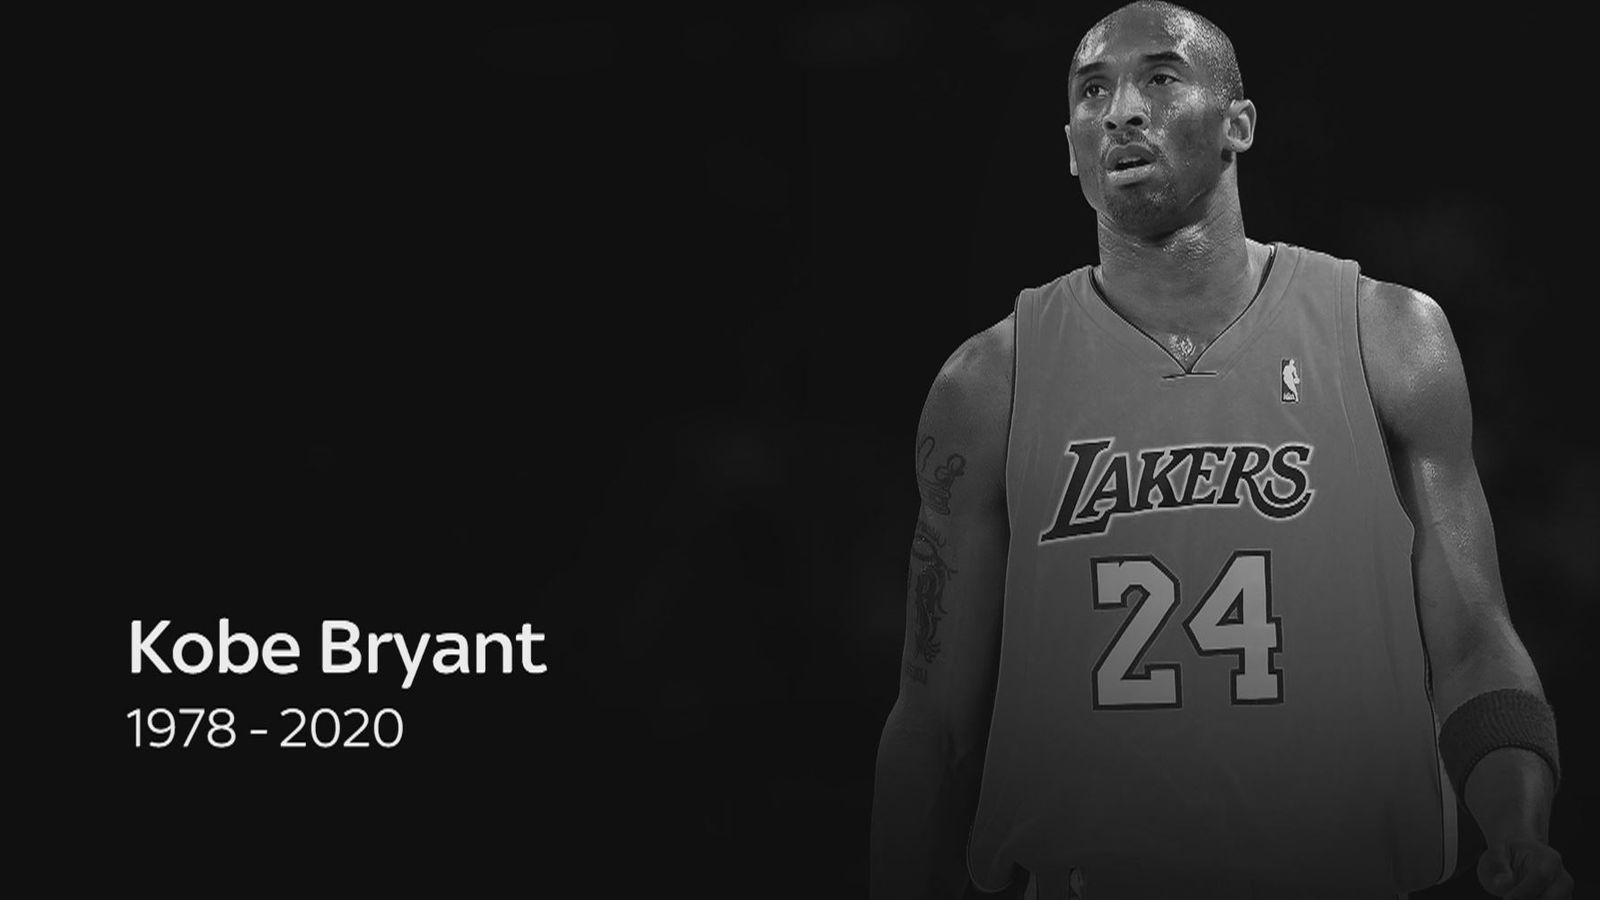 Los Angeles Lakers' legendary basketball player, Kobe Bryant died today in a tragic helicopter crash.  (Photo: SkySports, via skysports.com)